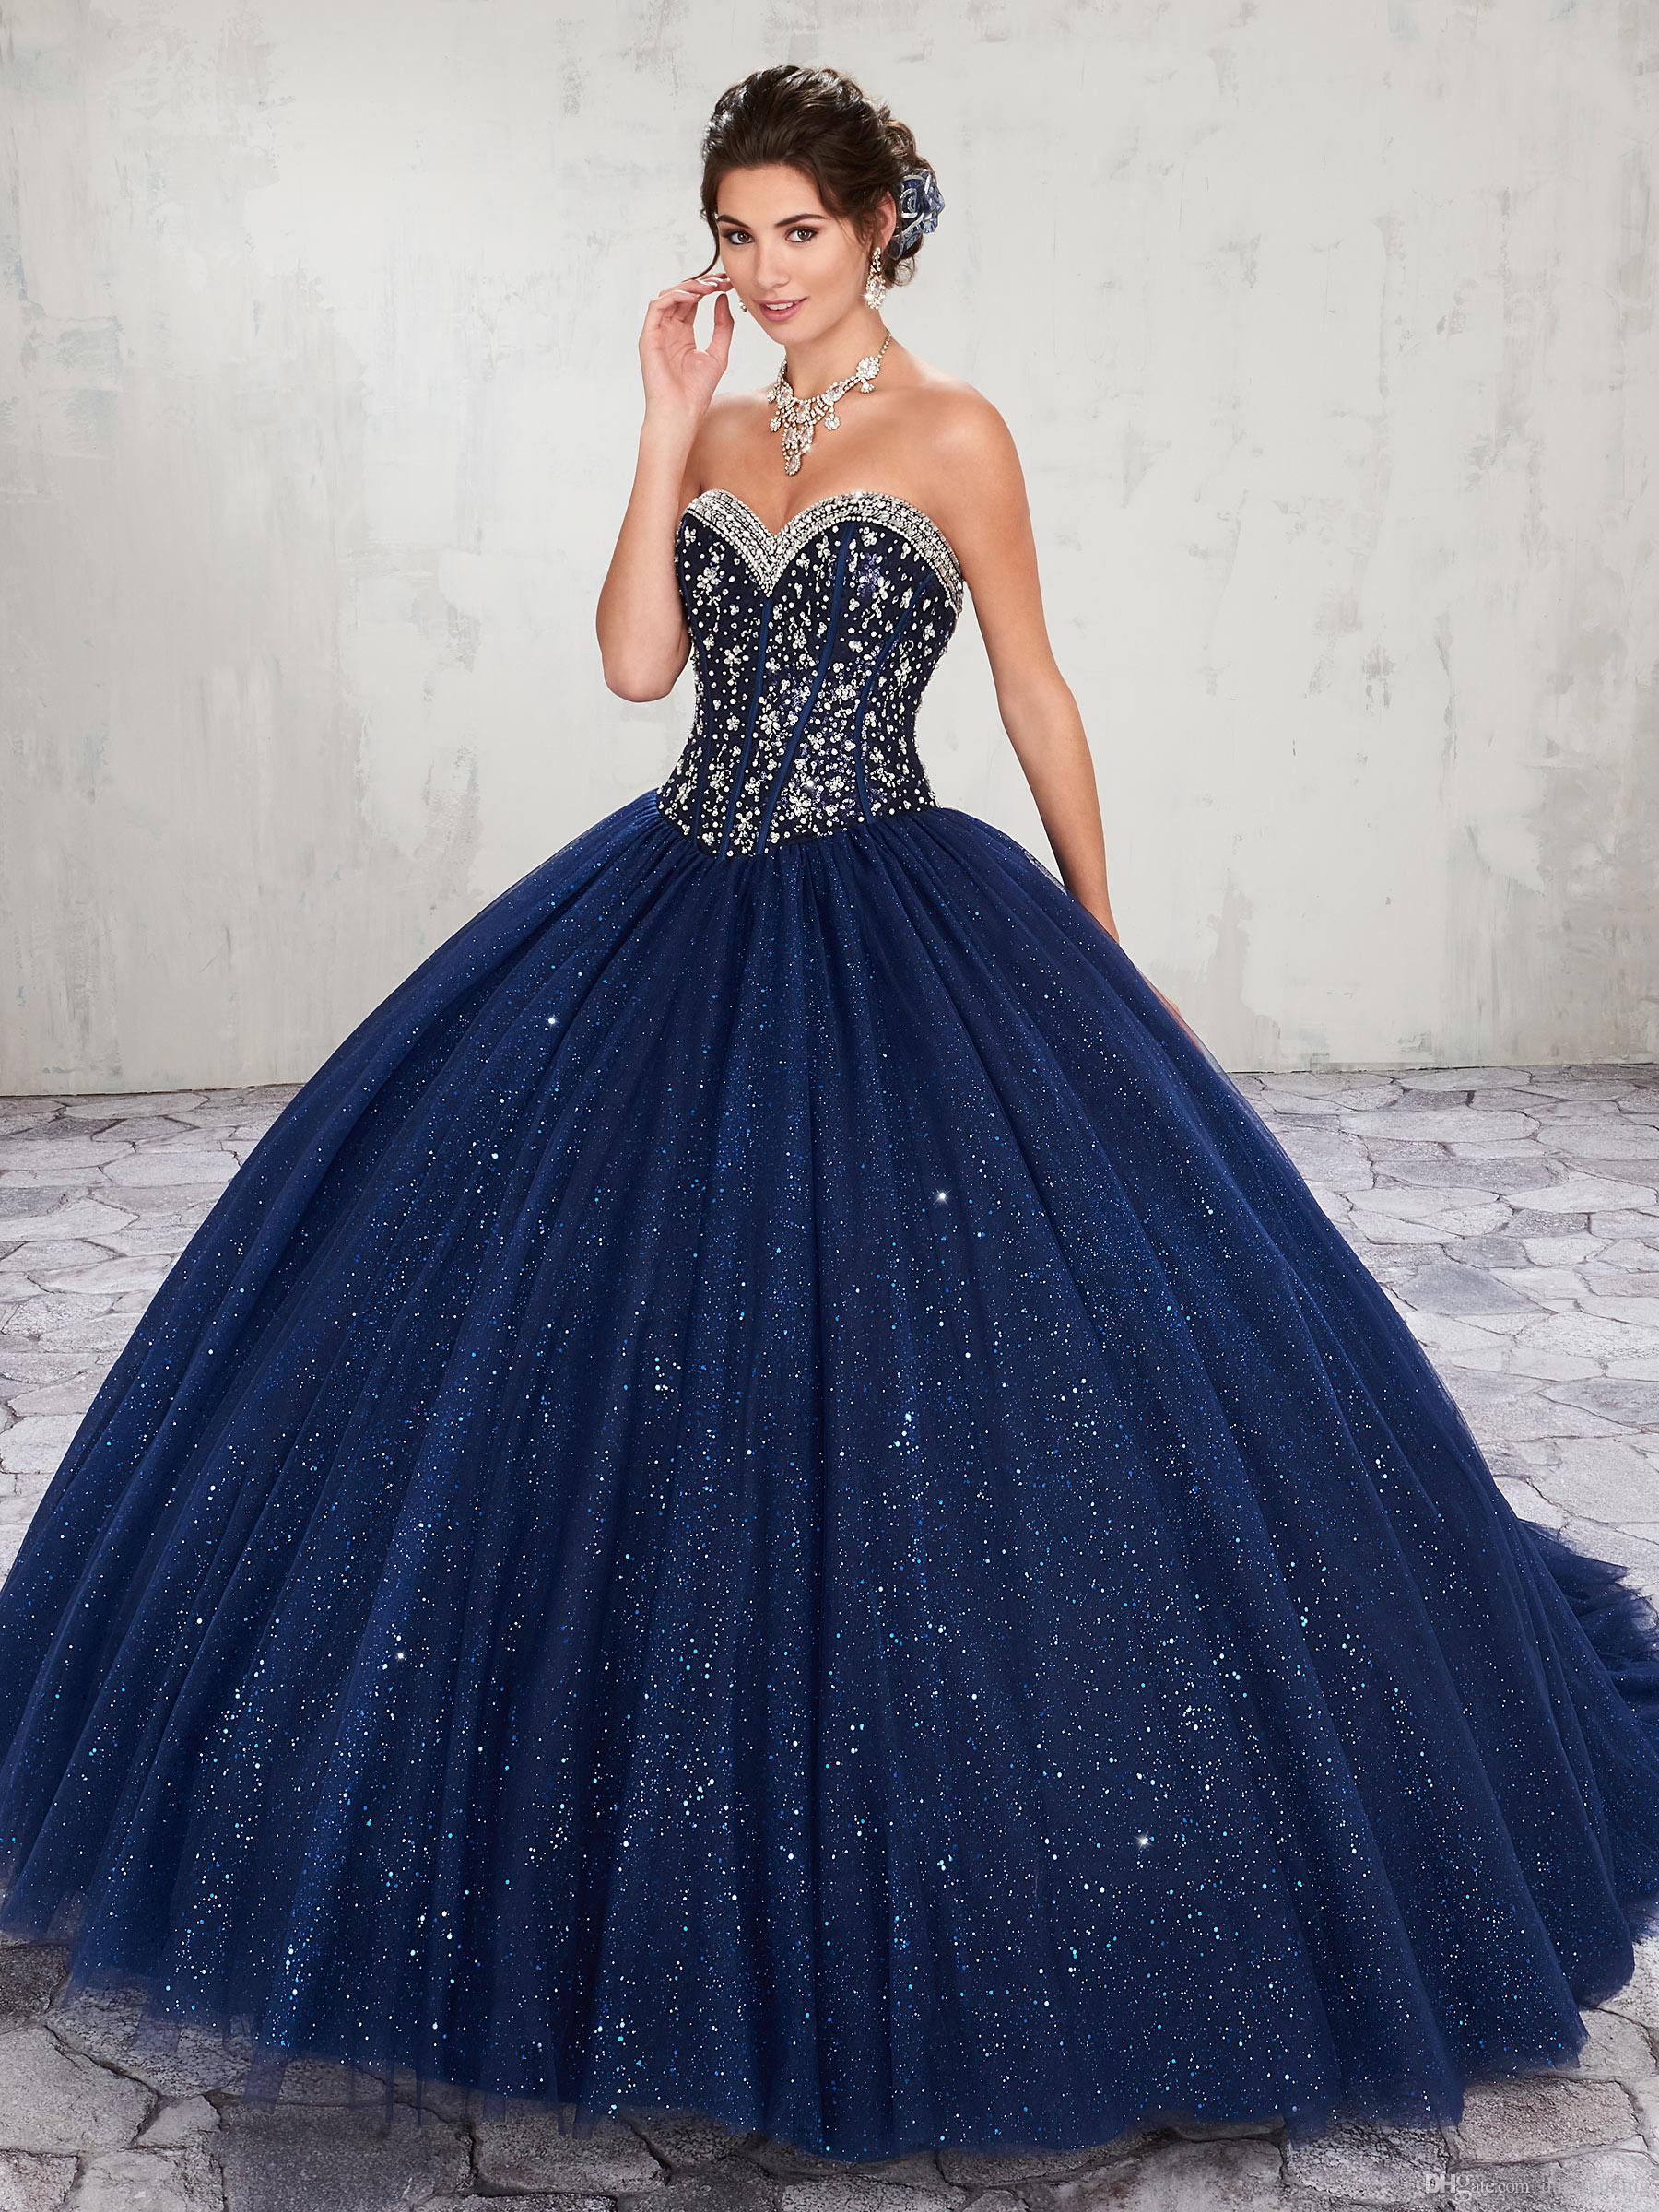 Blue dark with gold quinceanera dresses photo fotos